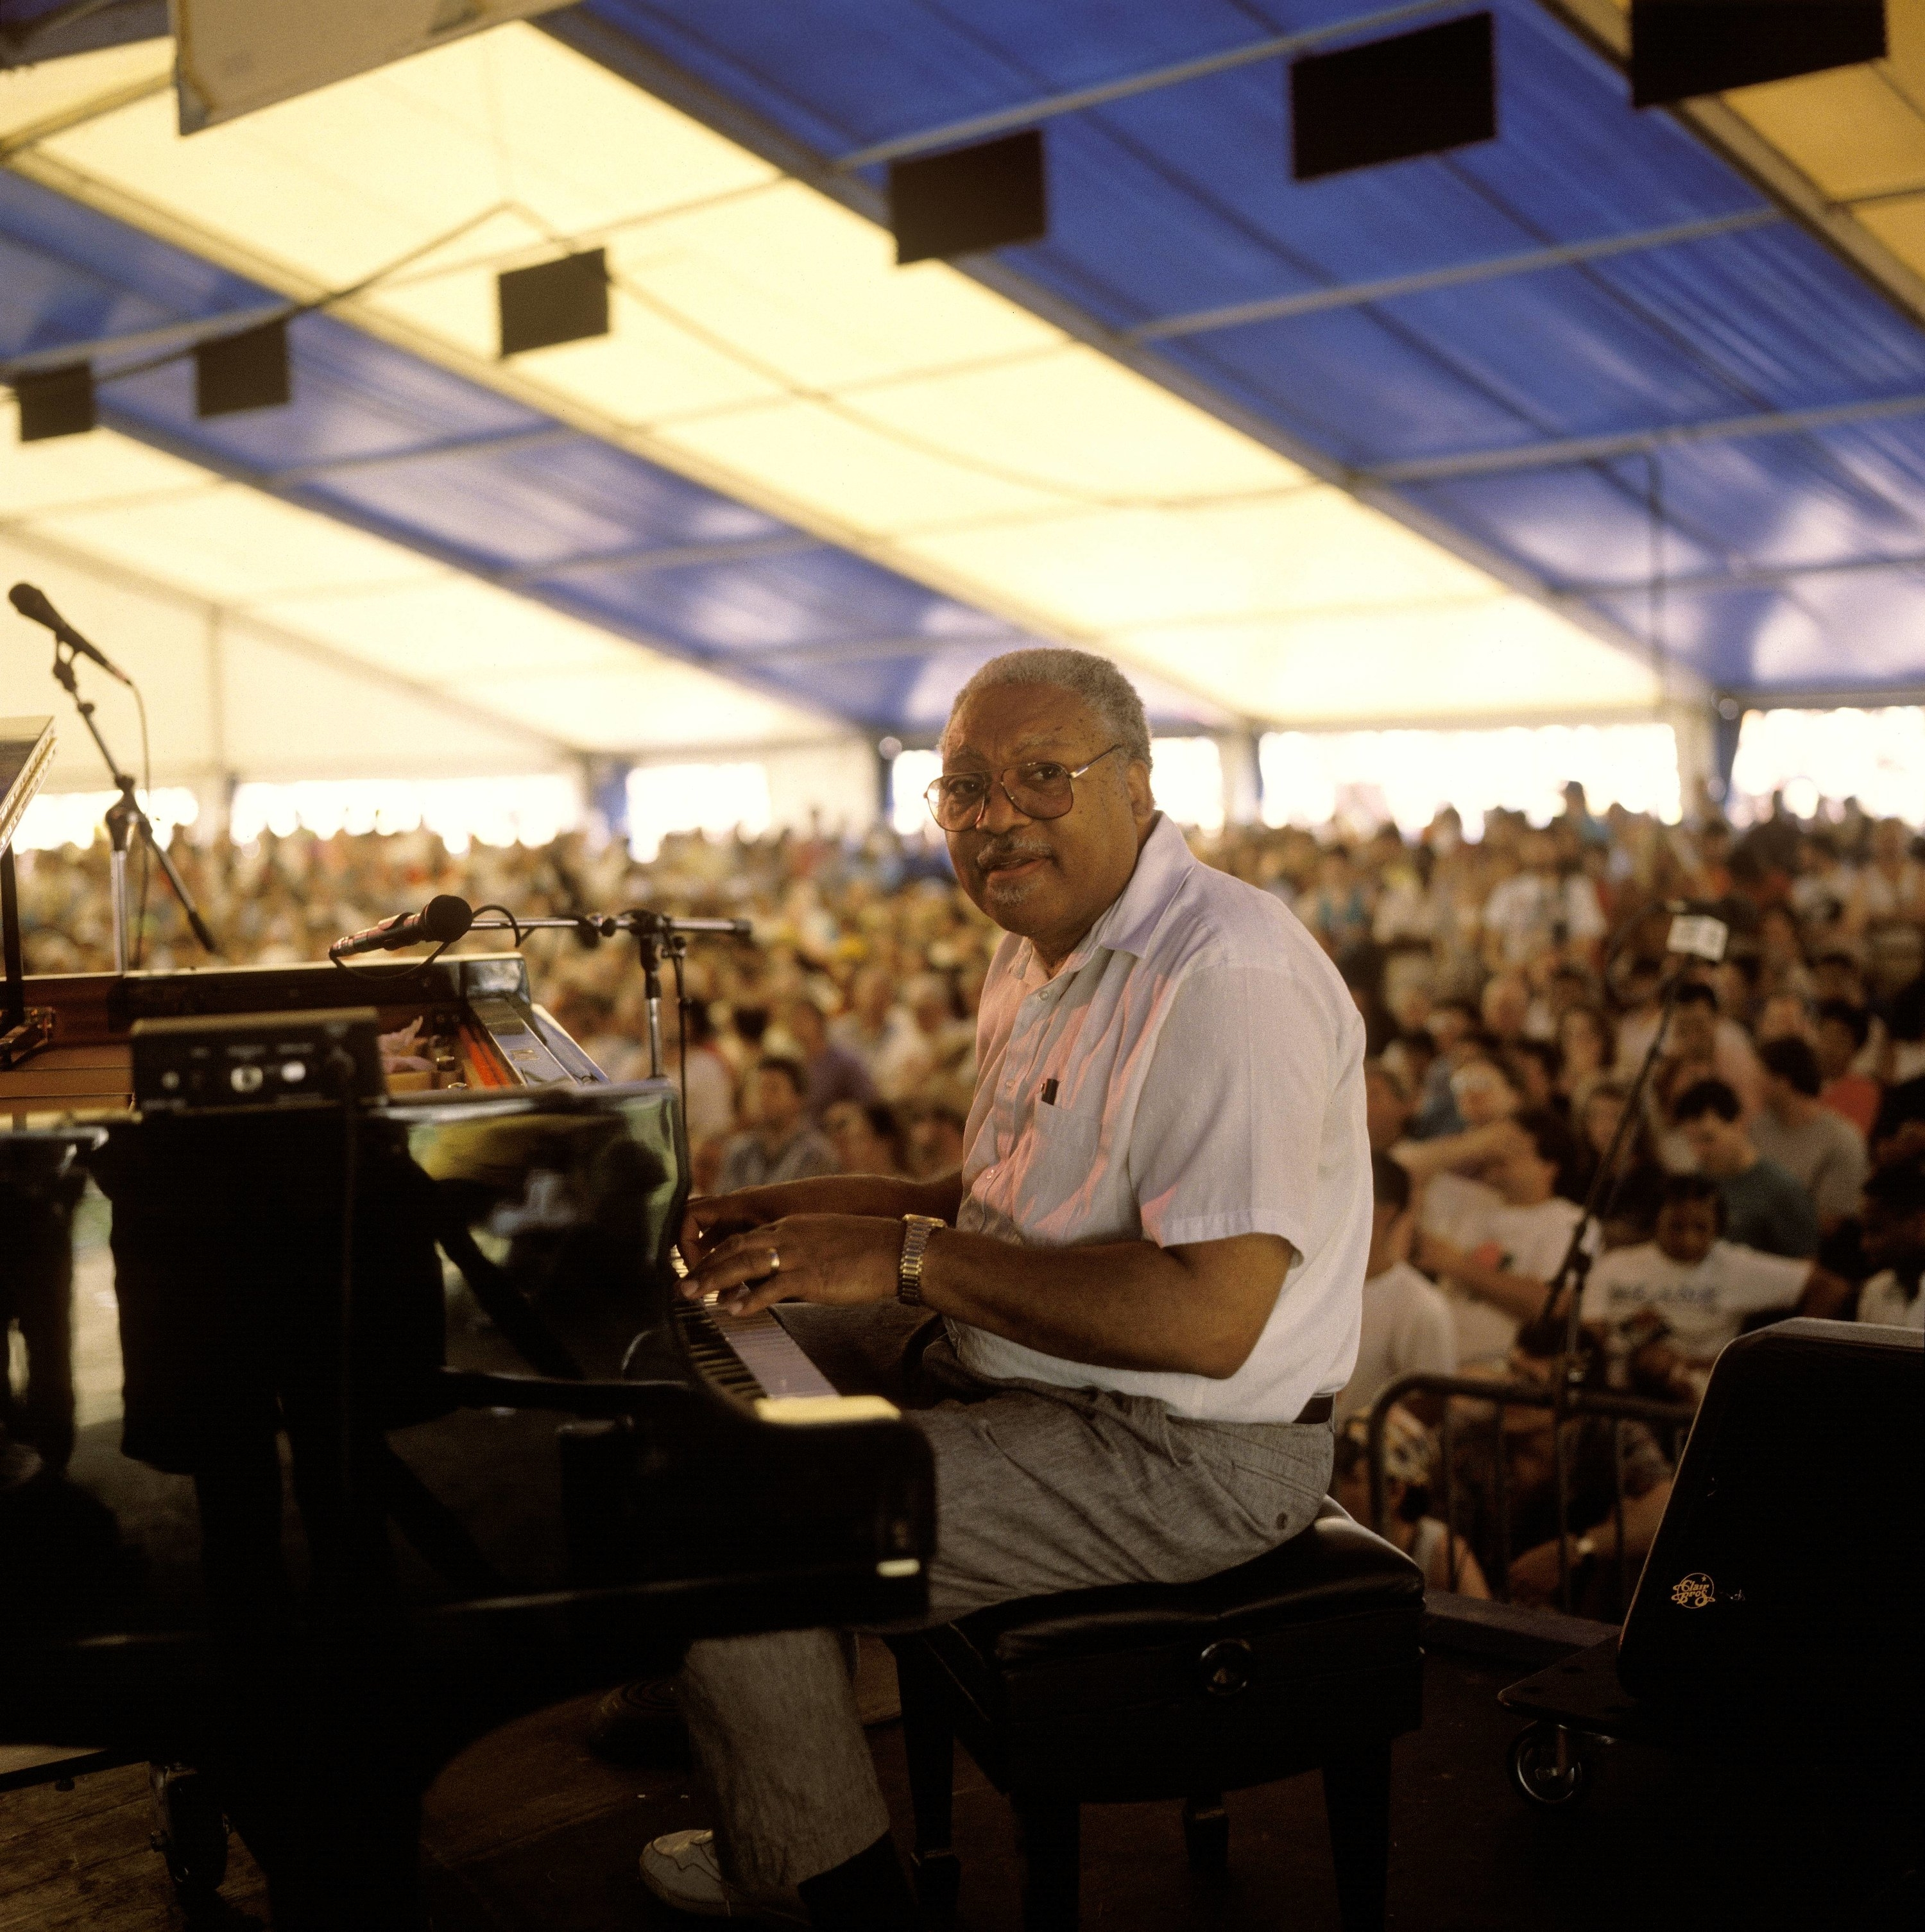 Man at a piano on stage with a crowd behind him